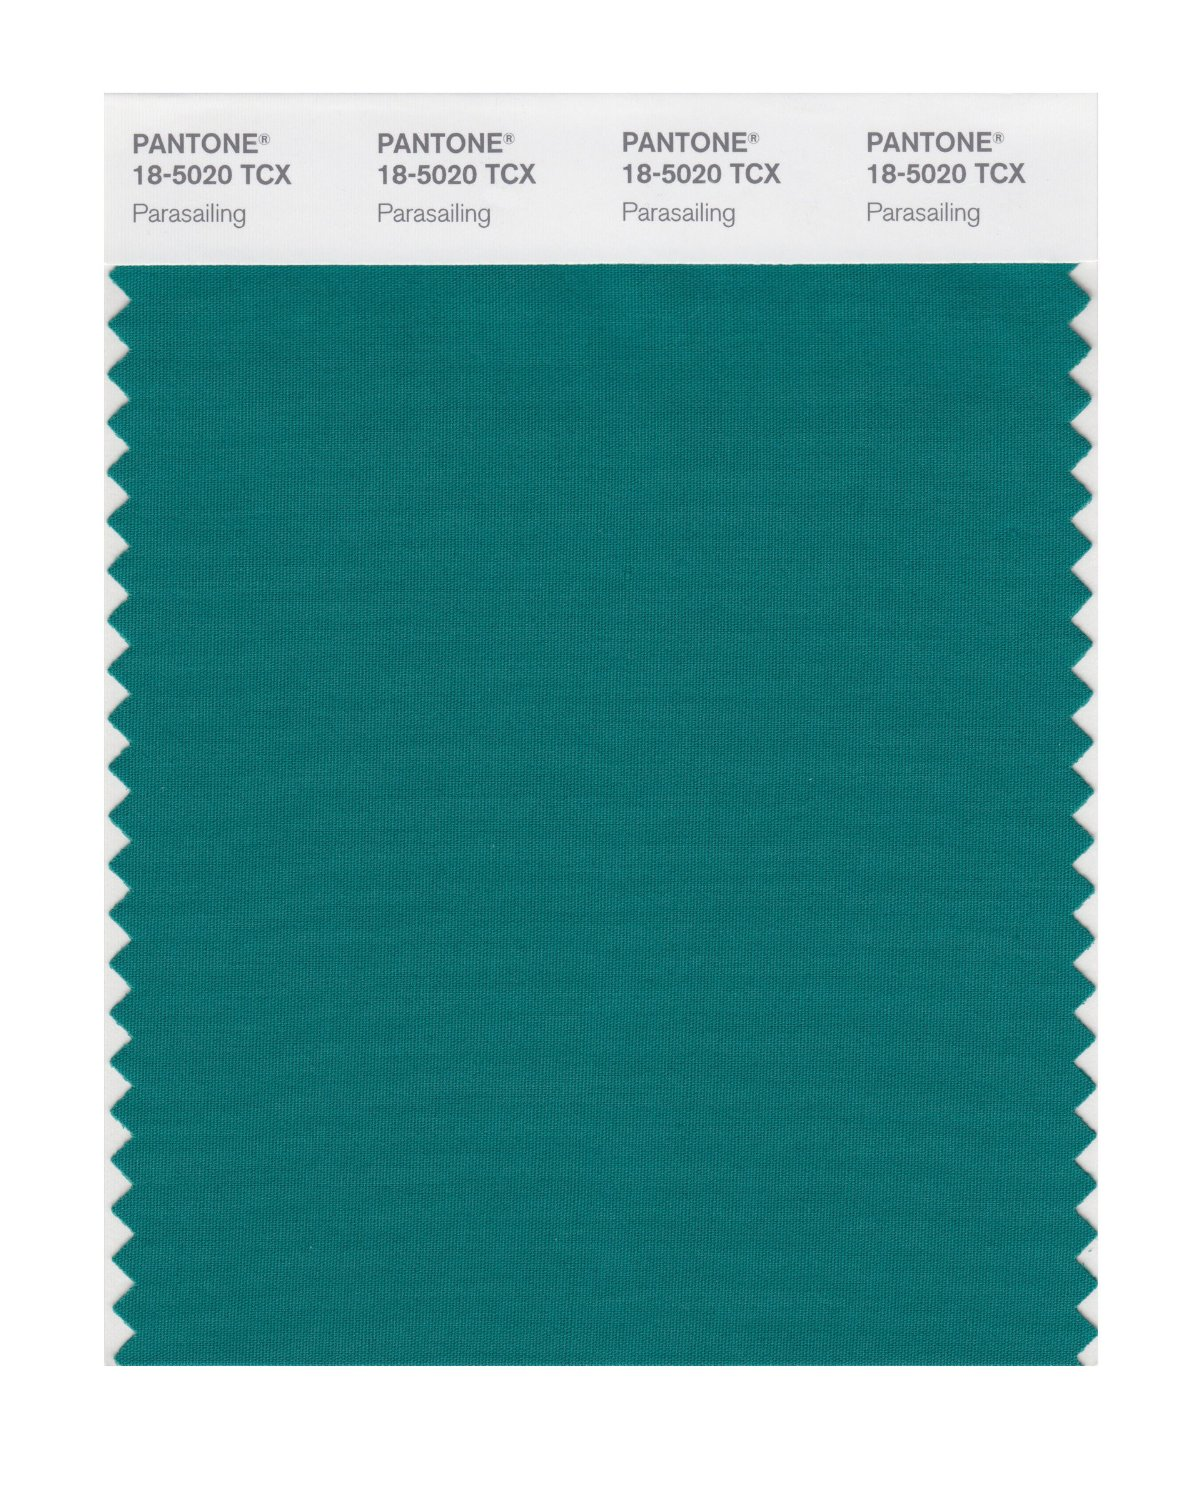 Pantone Smart Swatch 18-5020 Parasailing